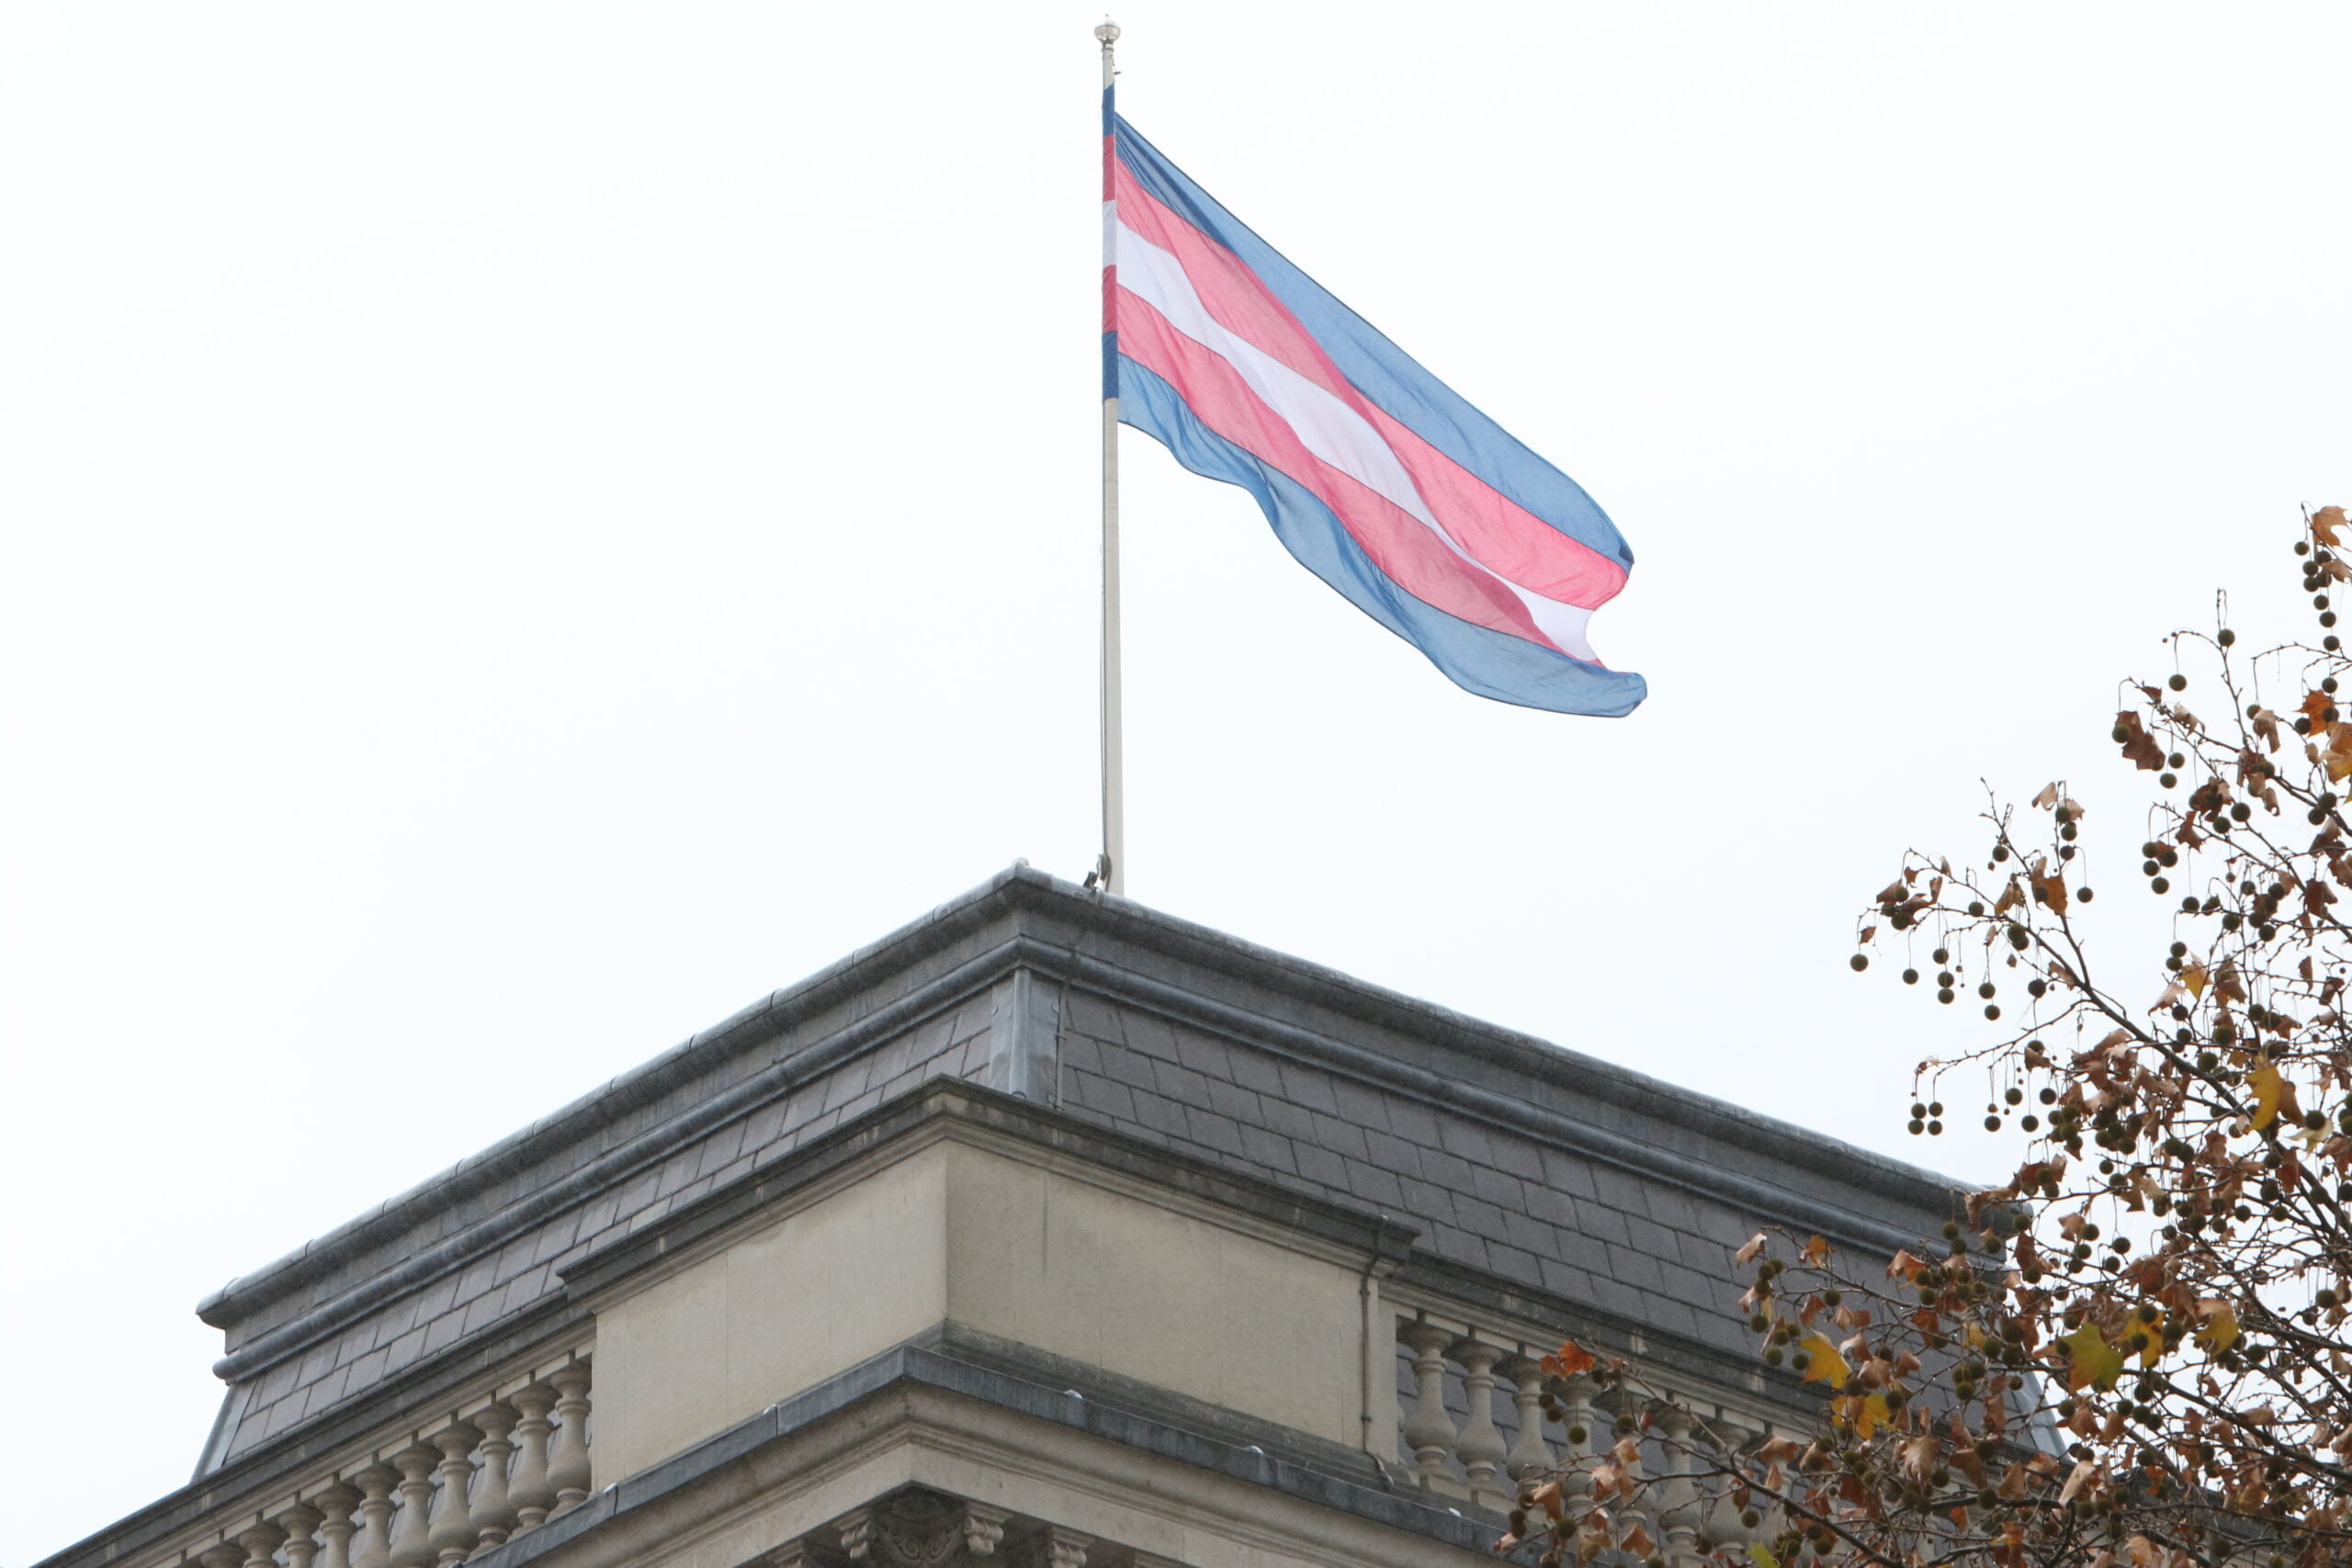 Trans pride flag on top of building